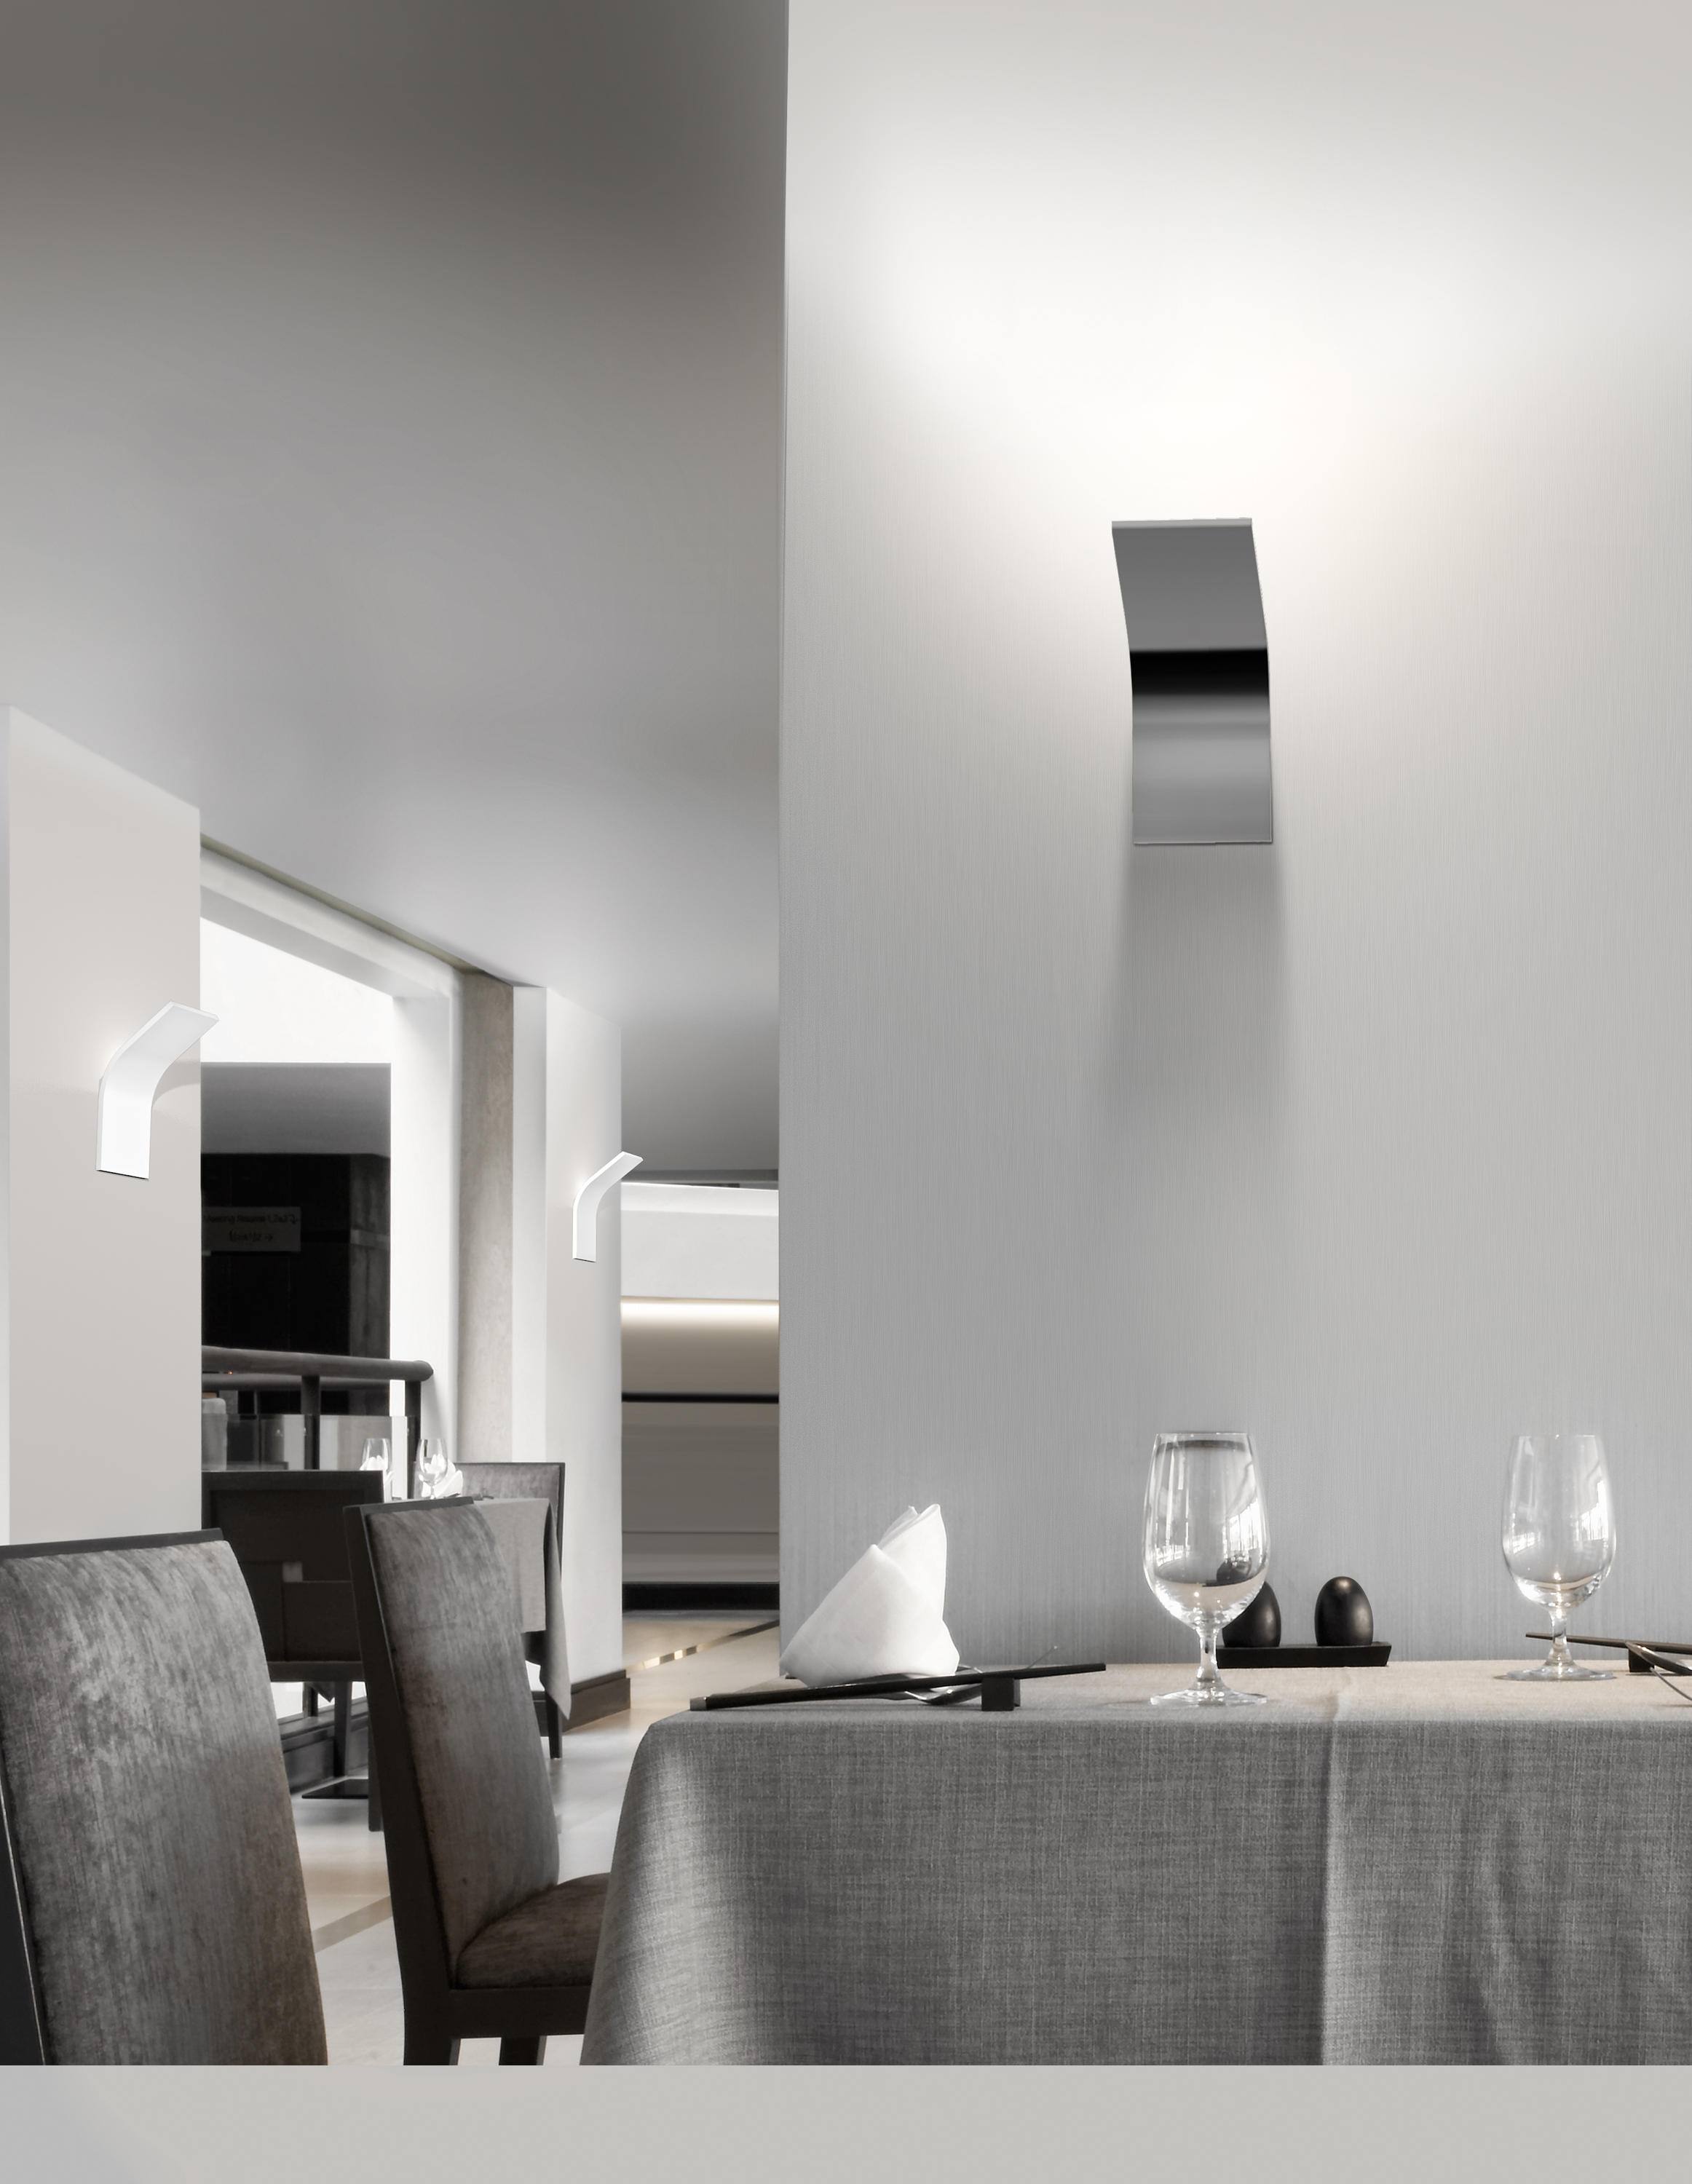 panzeri luminaire great emma with panzeri luminaire. Black Bedroom Furniture Sets. Home Design Ideas